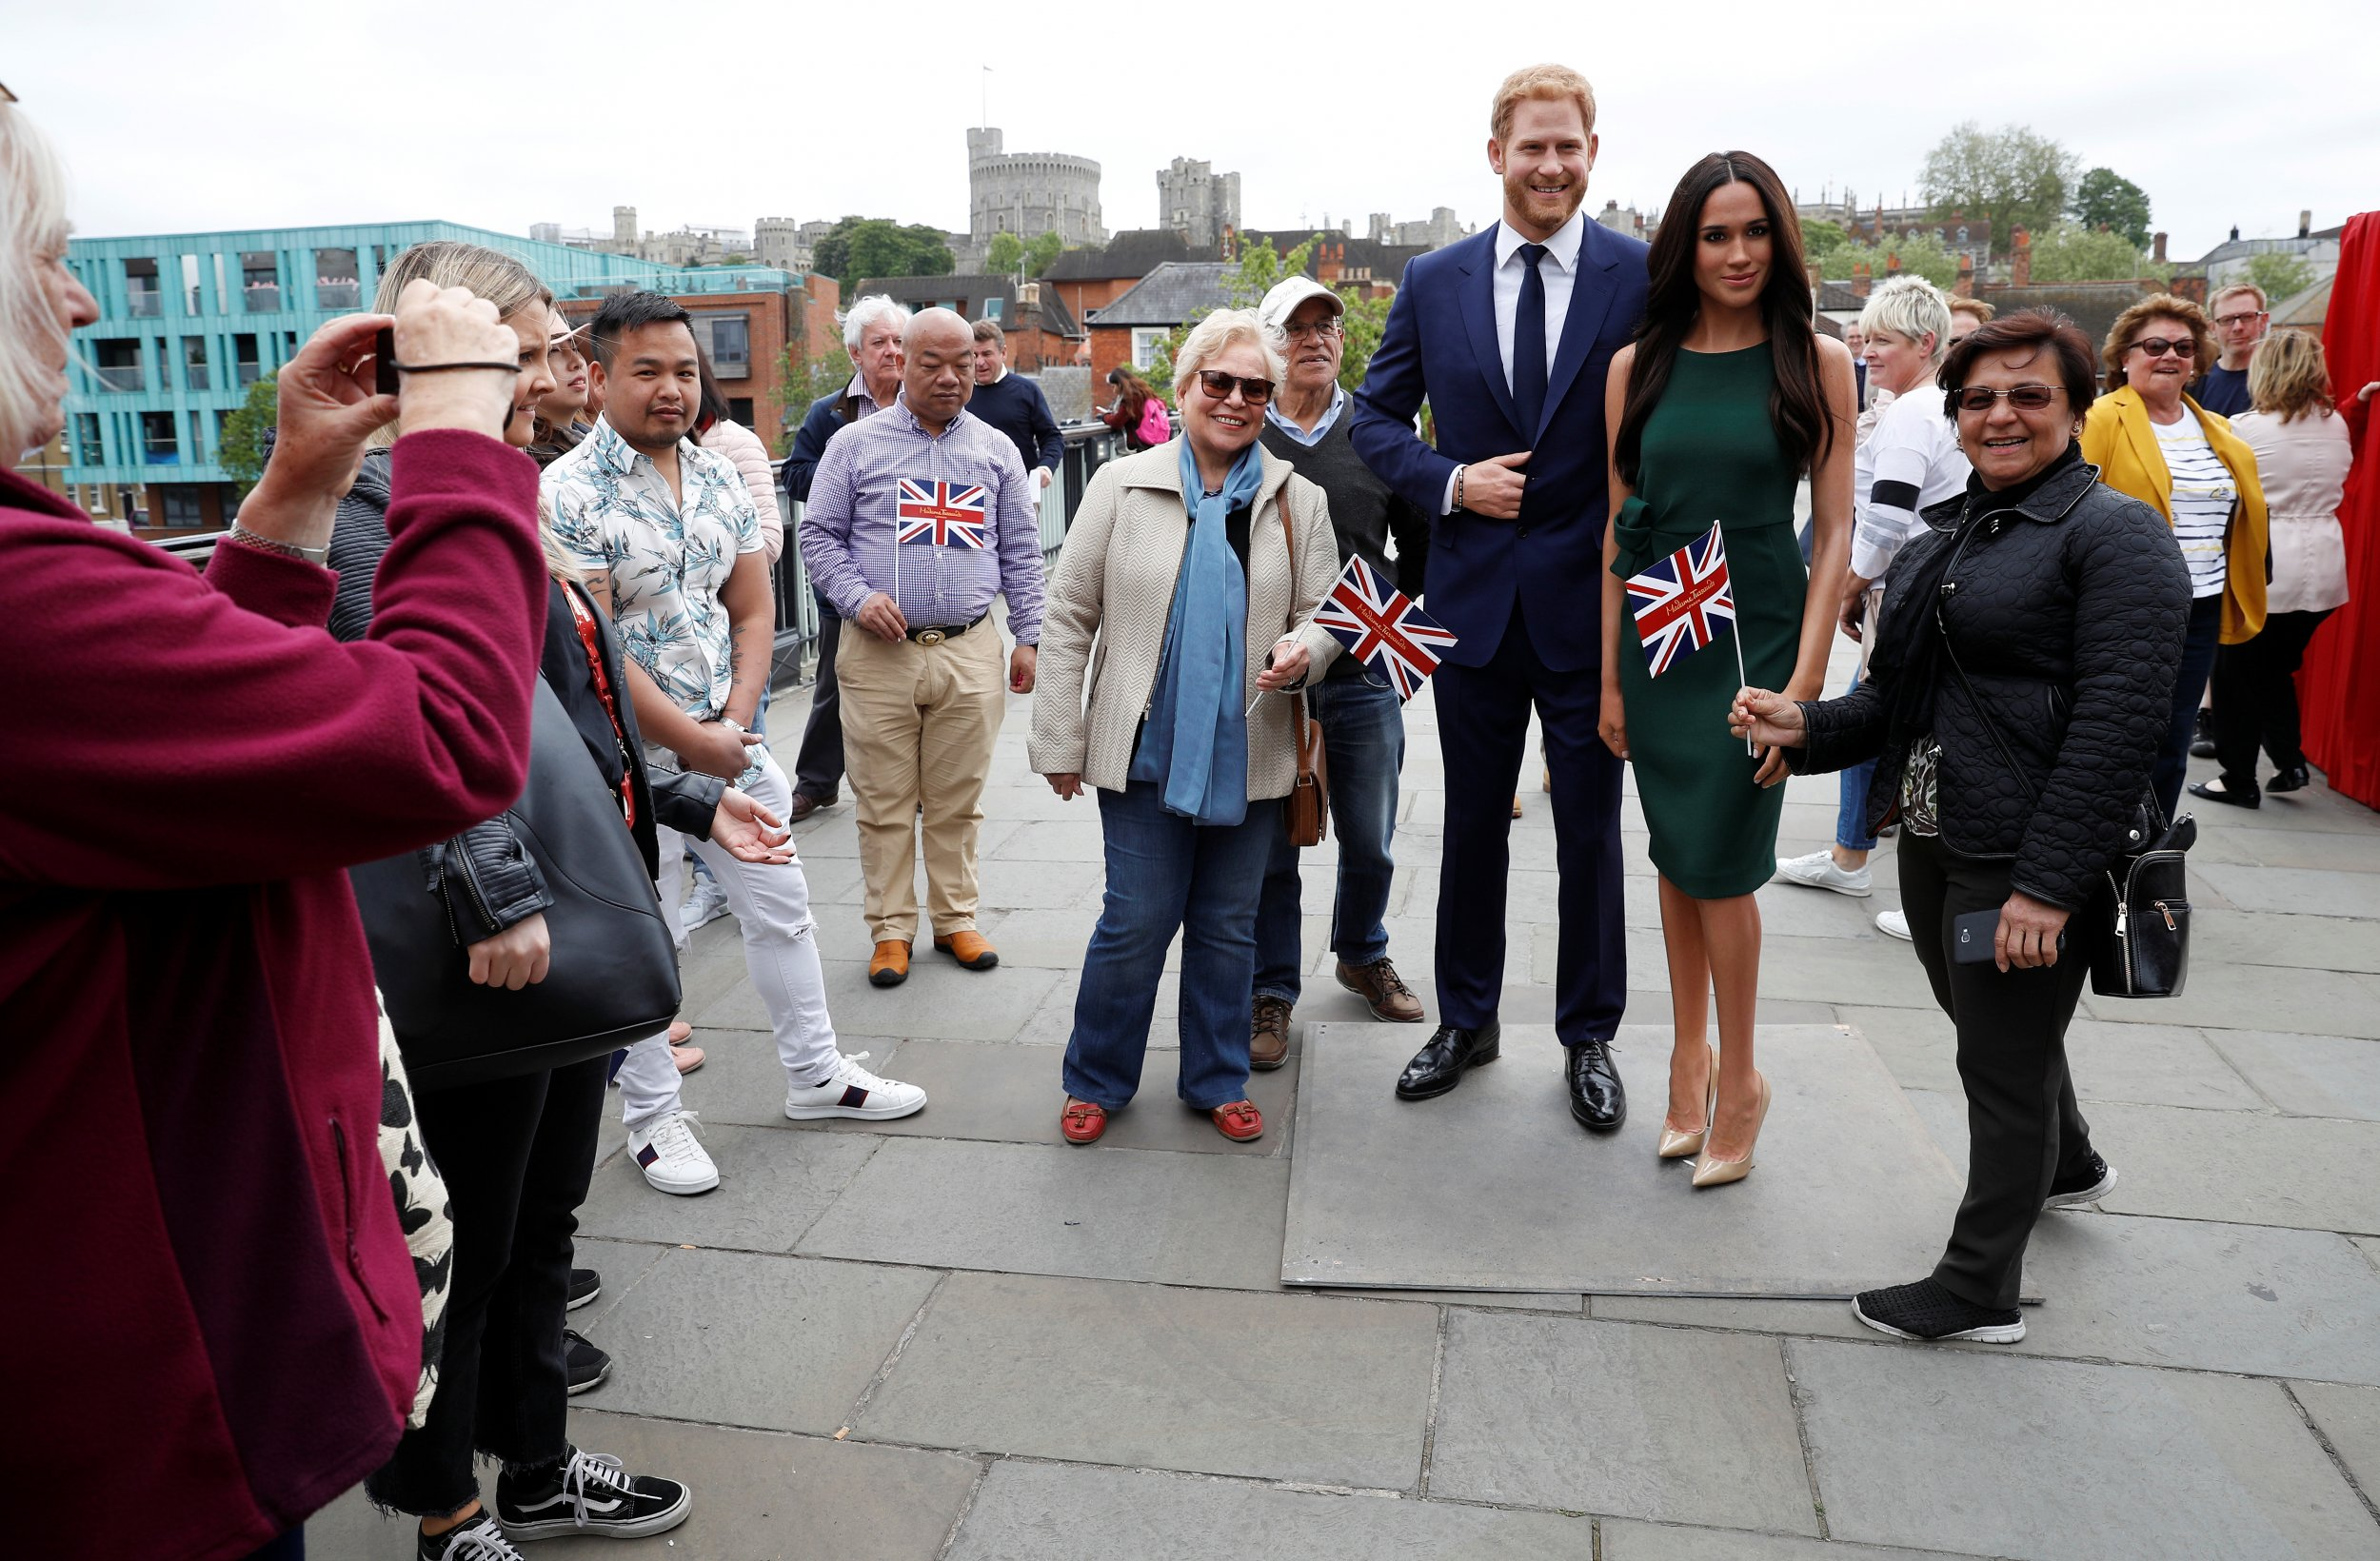 What Will Donald, Melania Trump Get Prince Harry and Meghan Markle for Royal Wedding Gift? White House Reveals Present